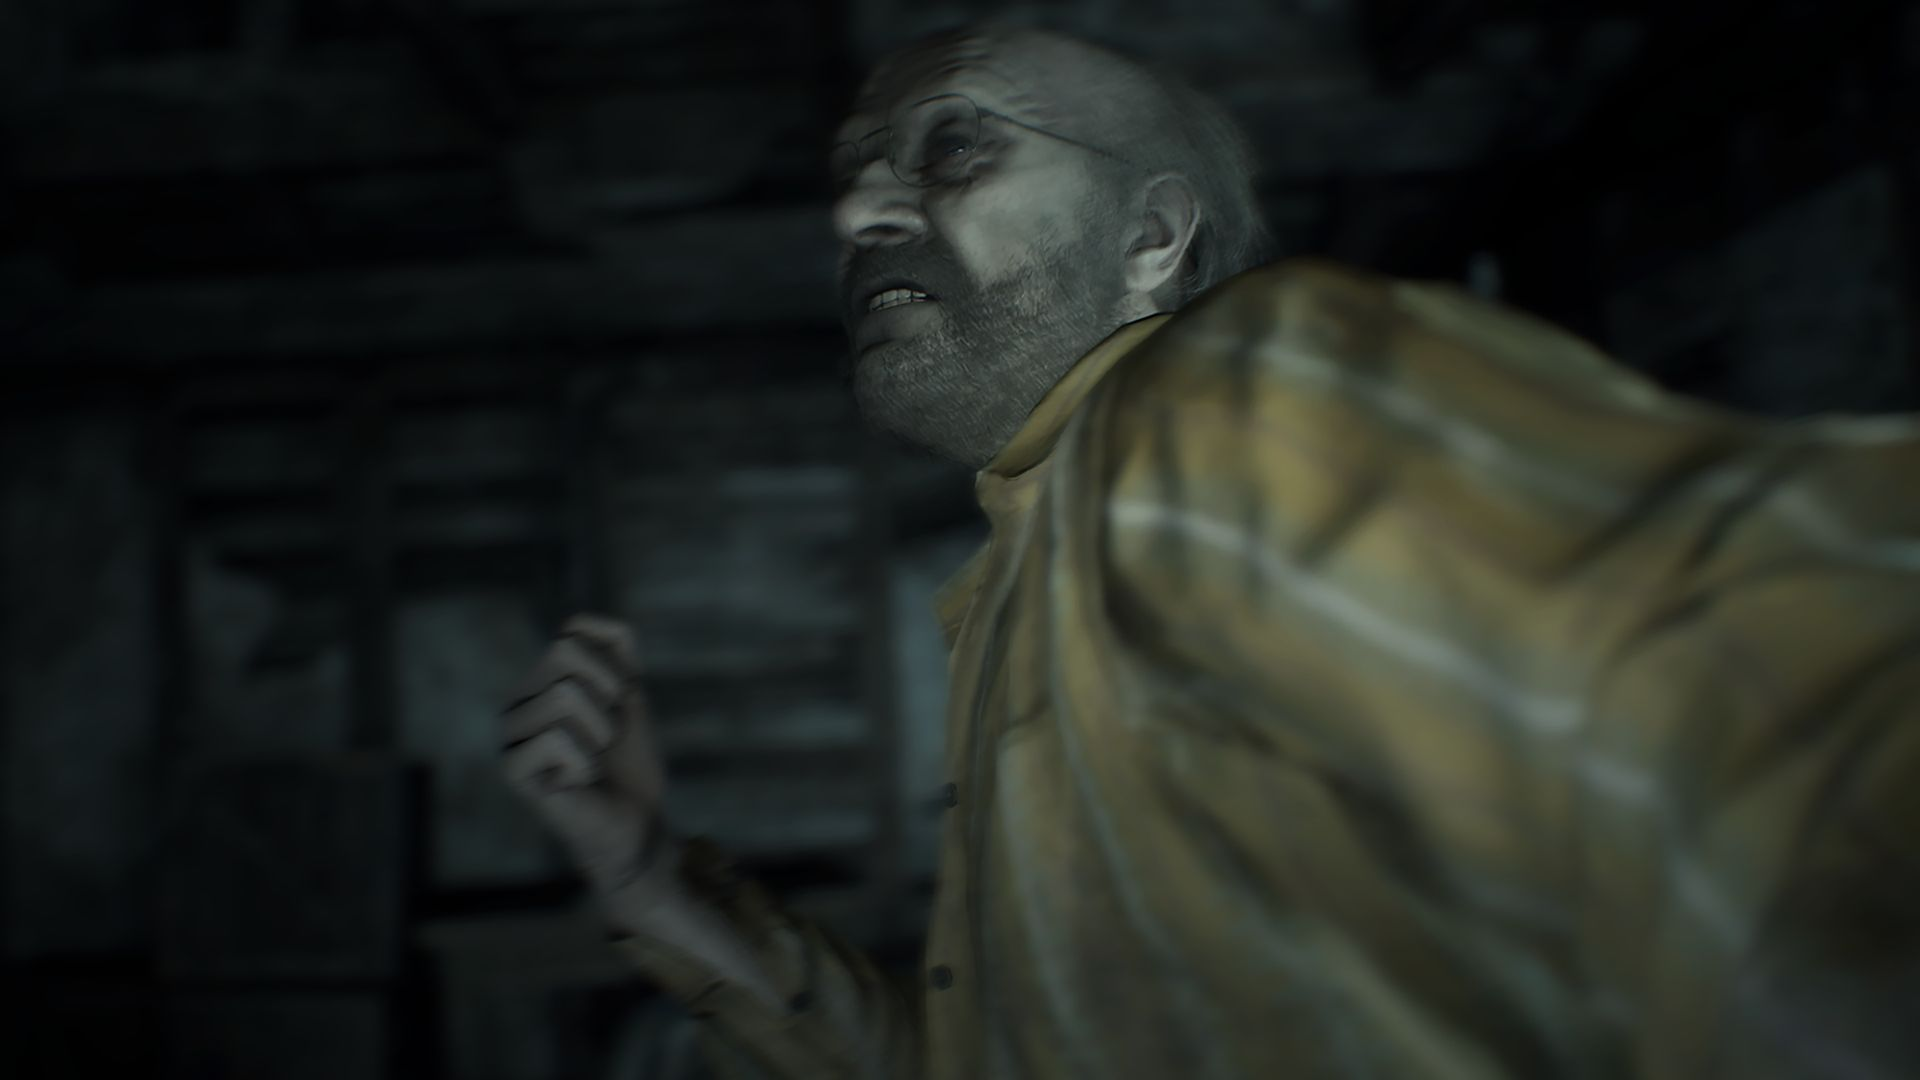 Resident Evil 7 Gameplay Story Plot Biohazard Details Footage